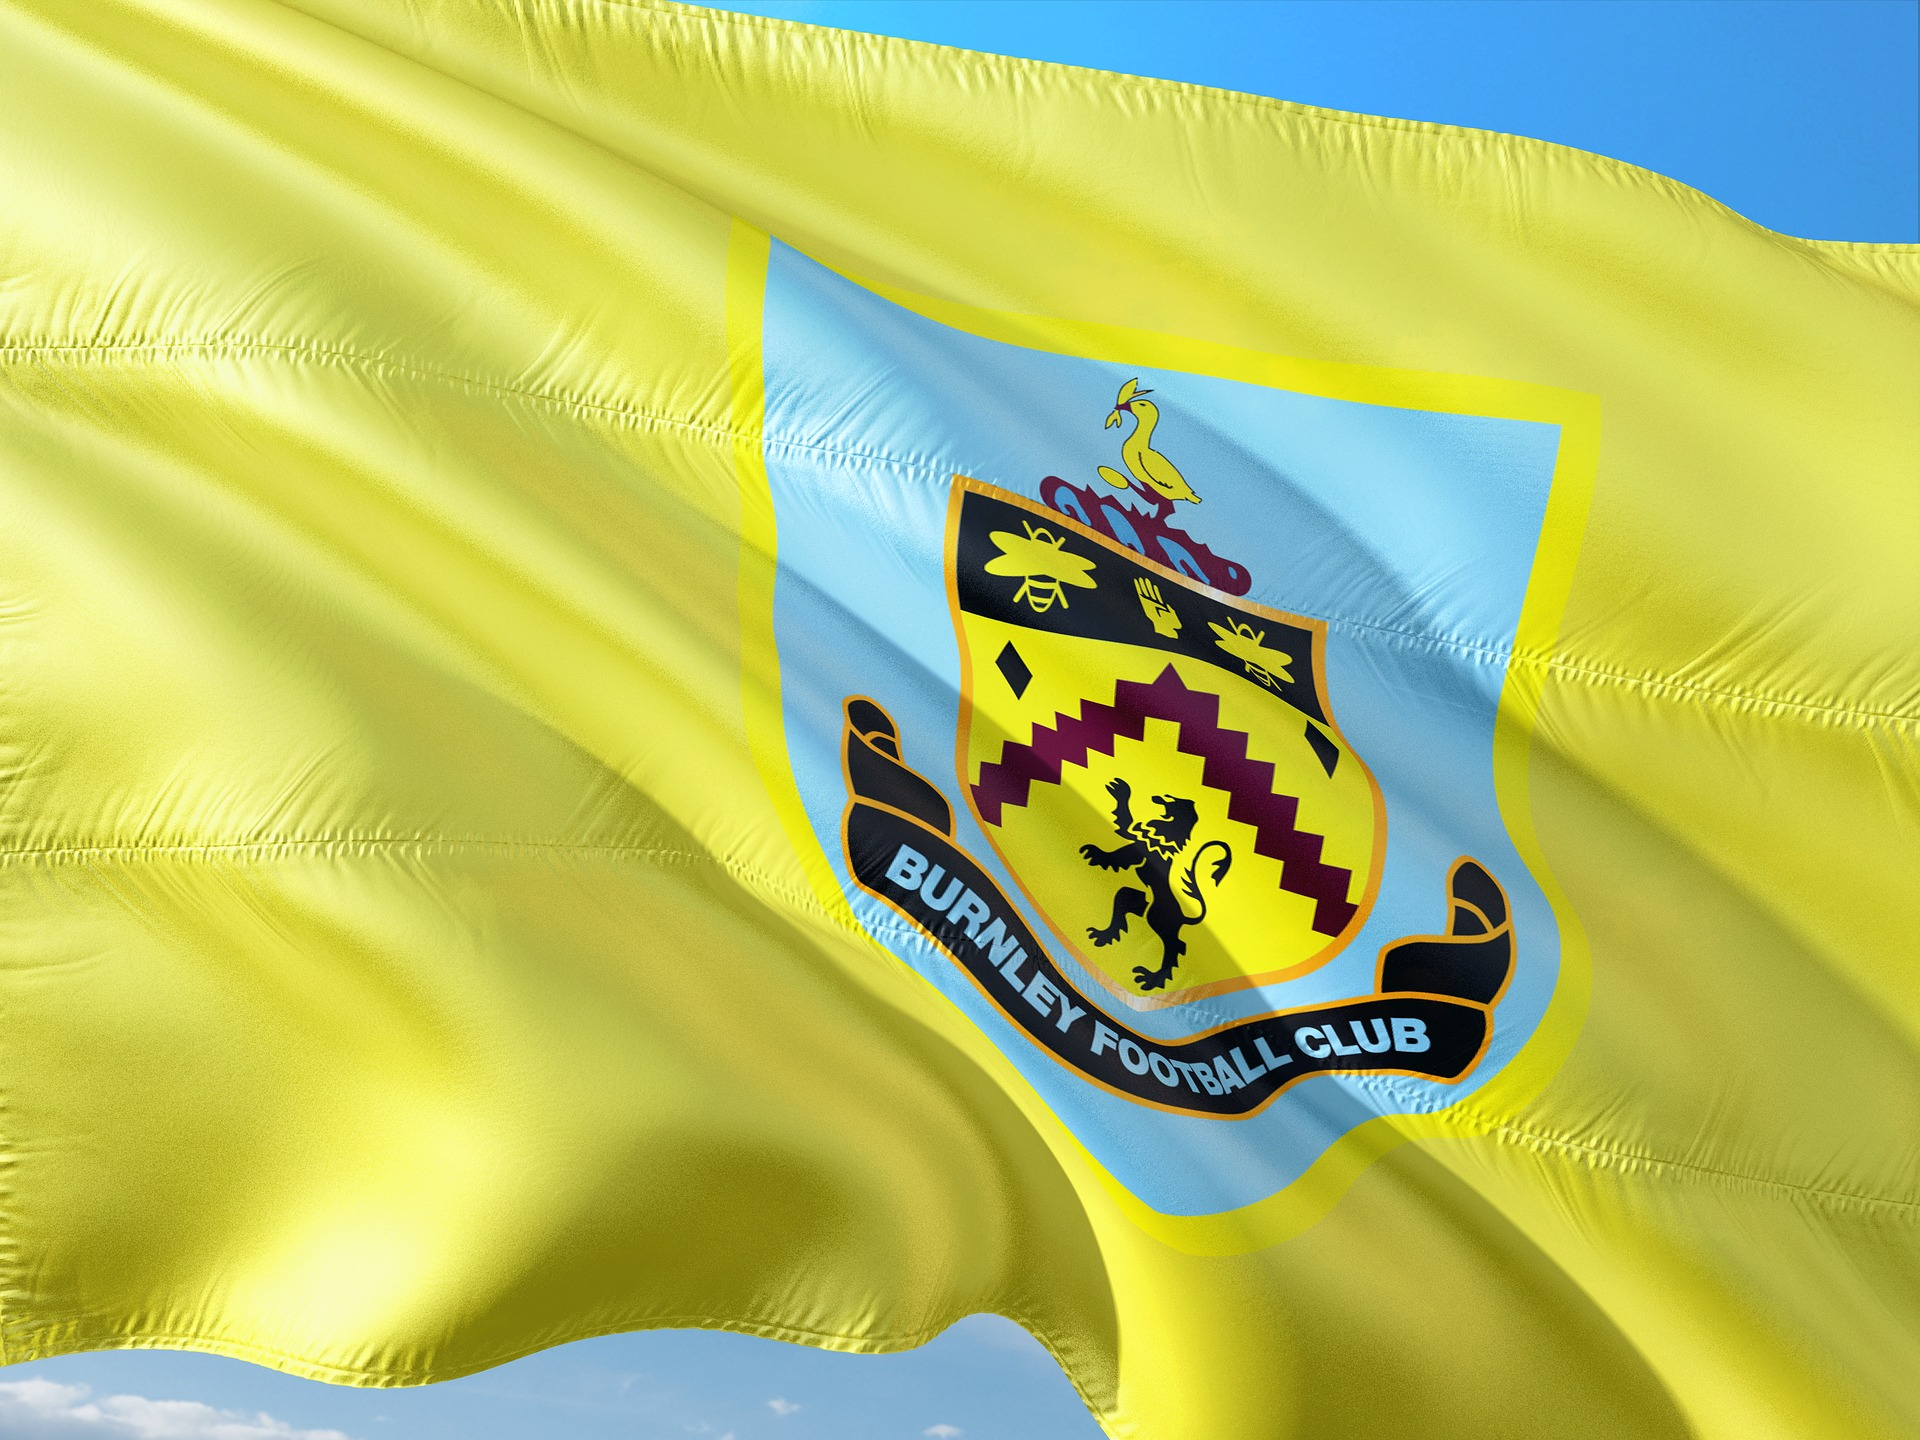 burnley fc, sponsorship opportunity